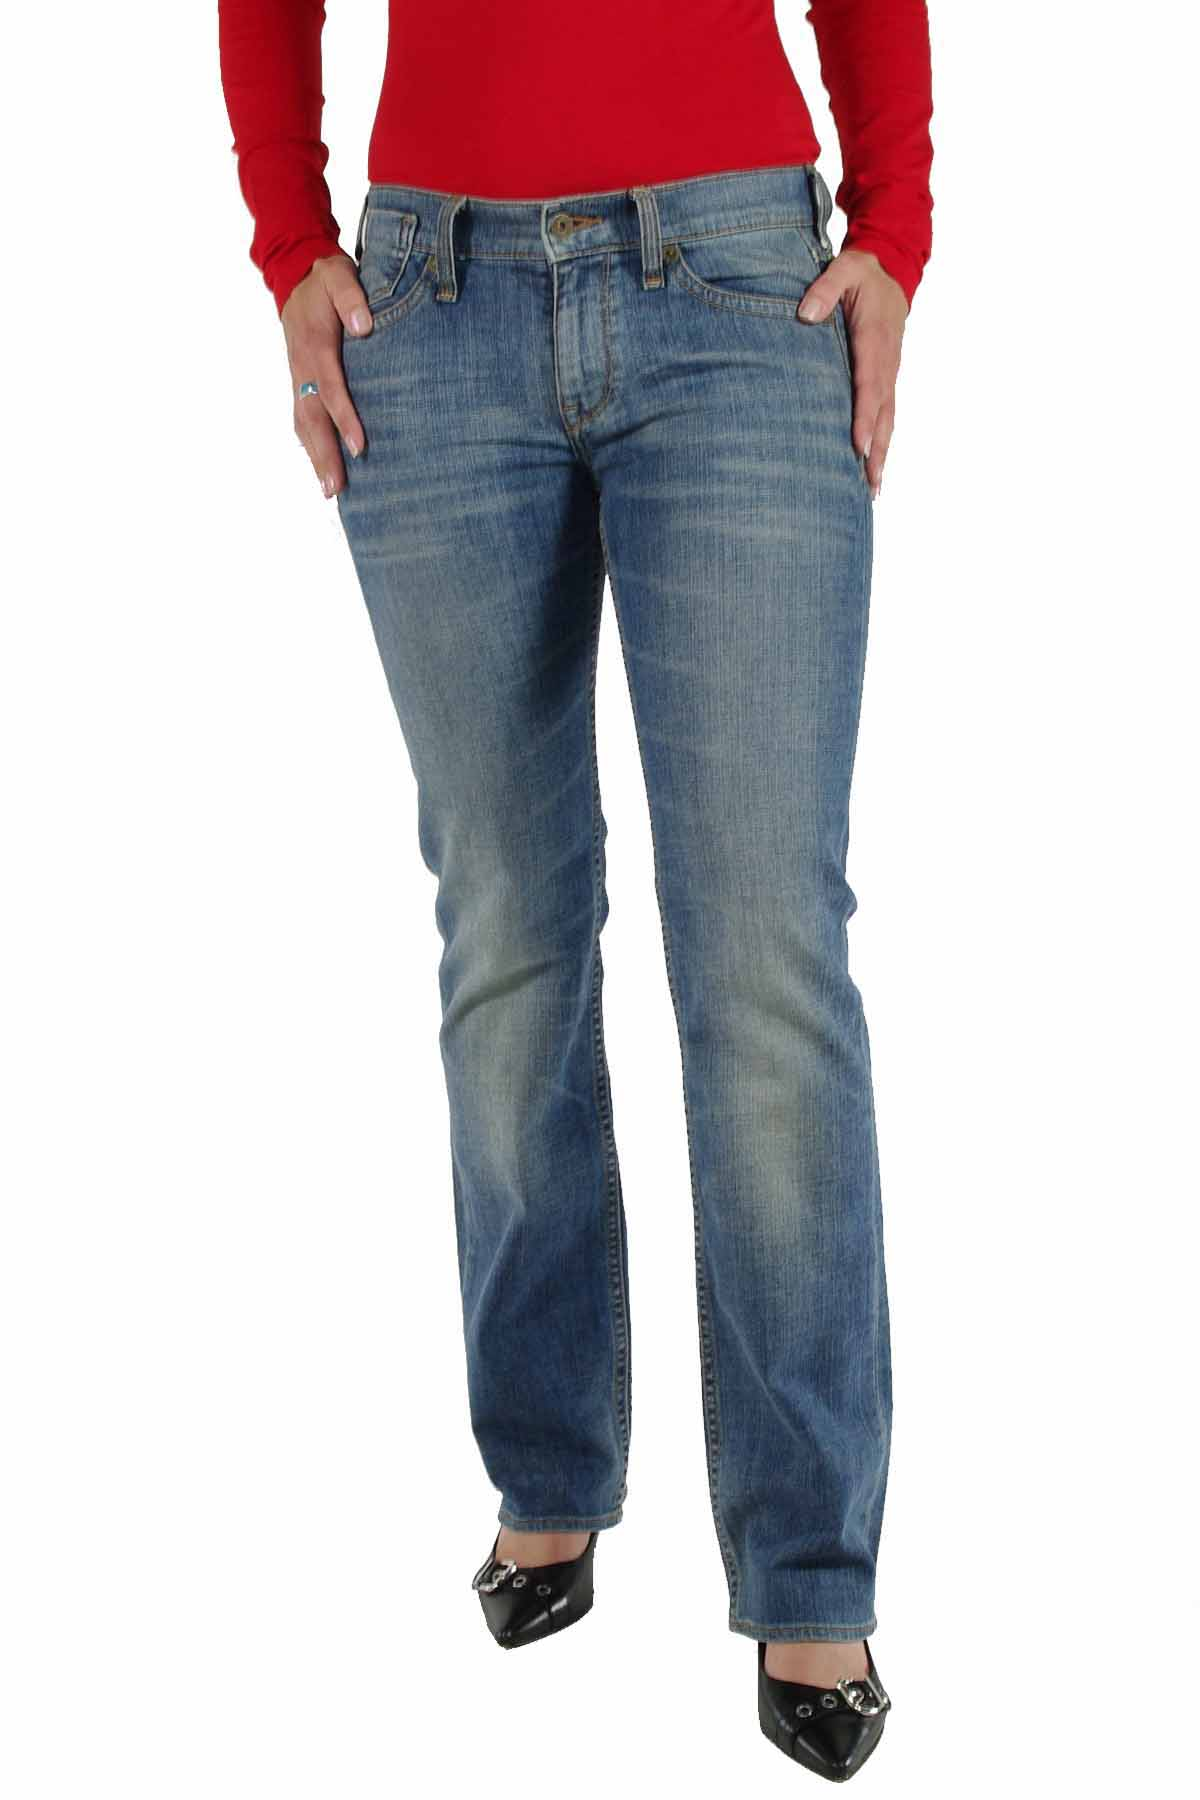 Mustang jeans 7